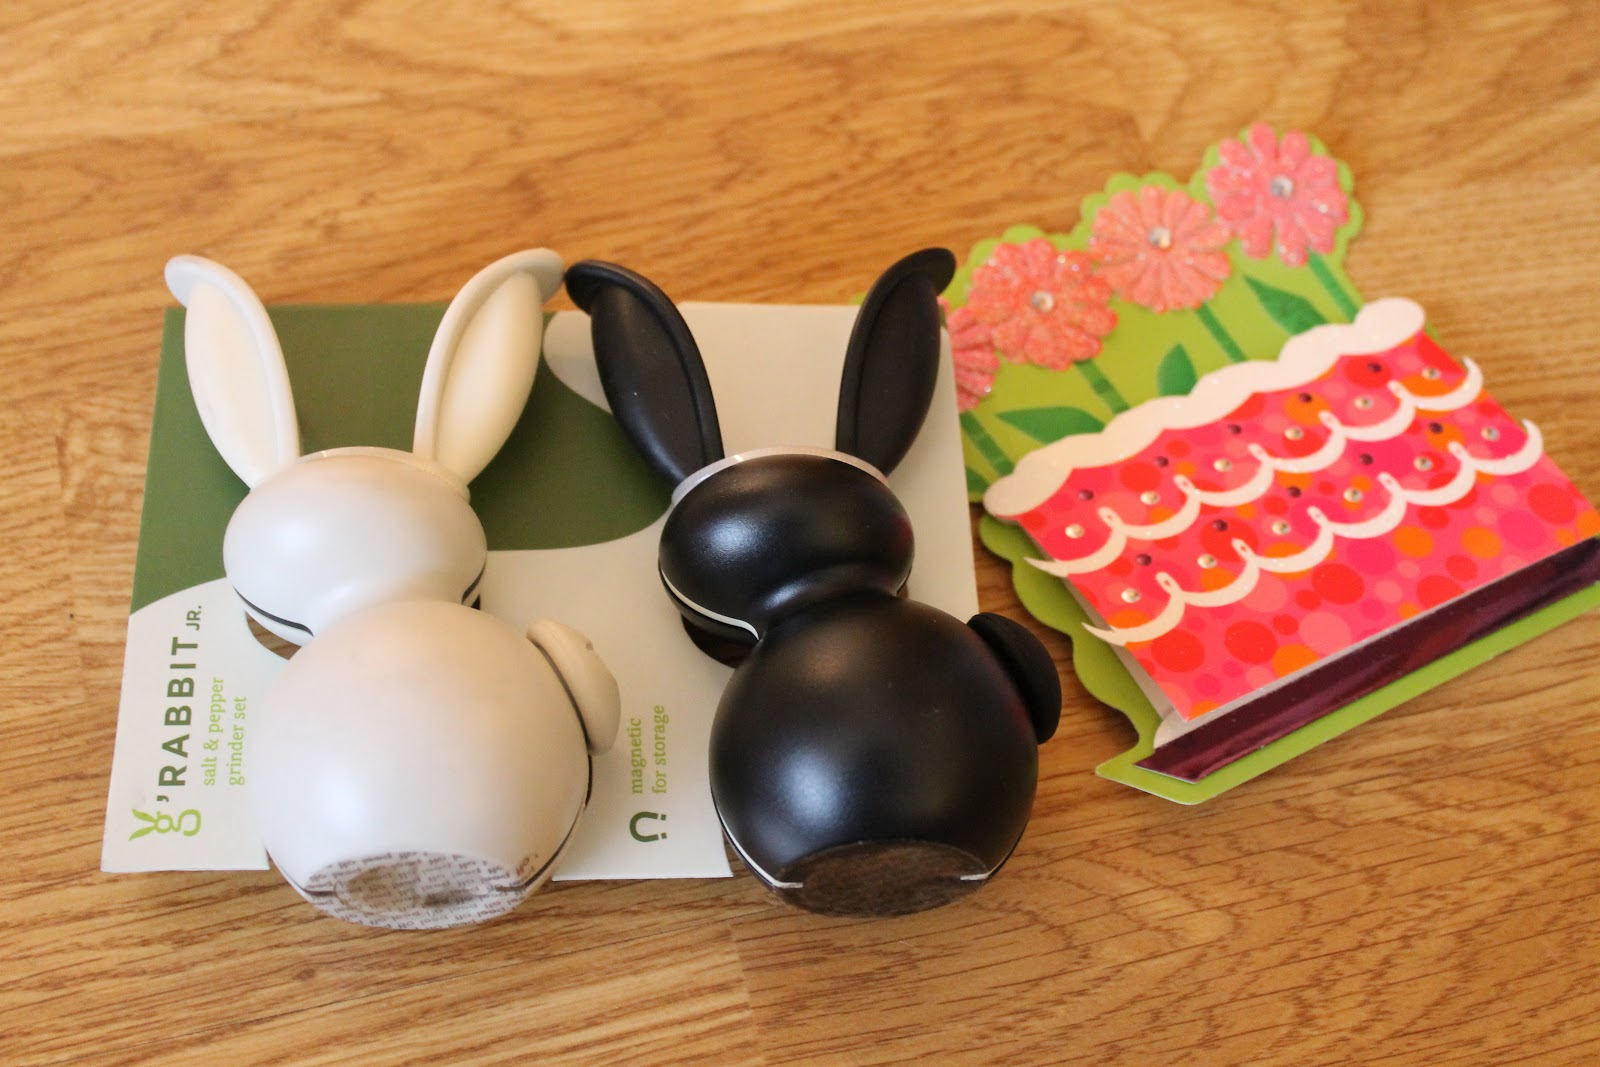 It S A Black And White Bunny Salt Pepper Grinder Set You Squeeze The Ears To Grind Or